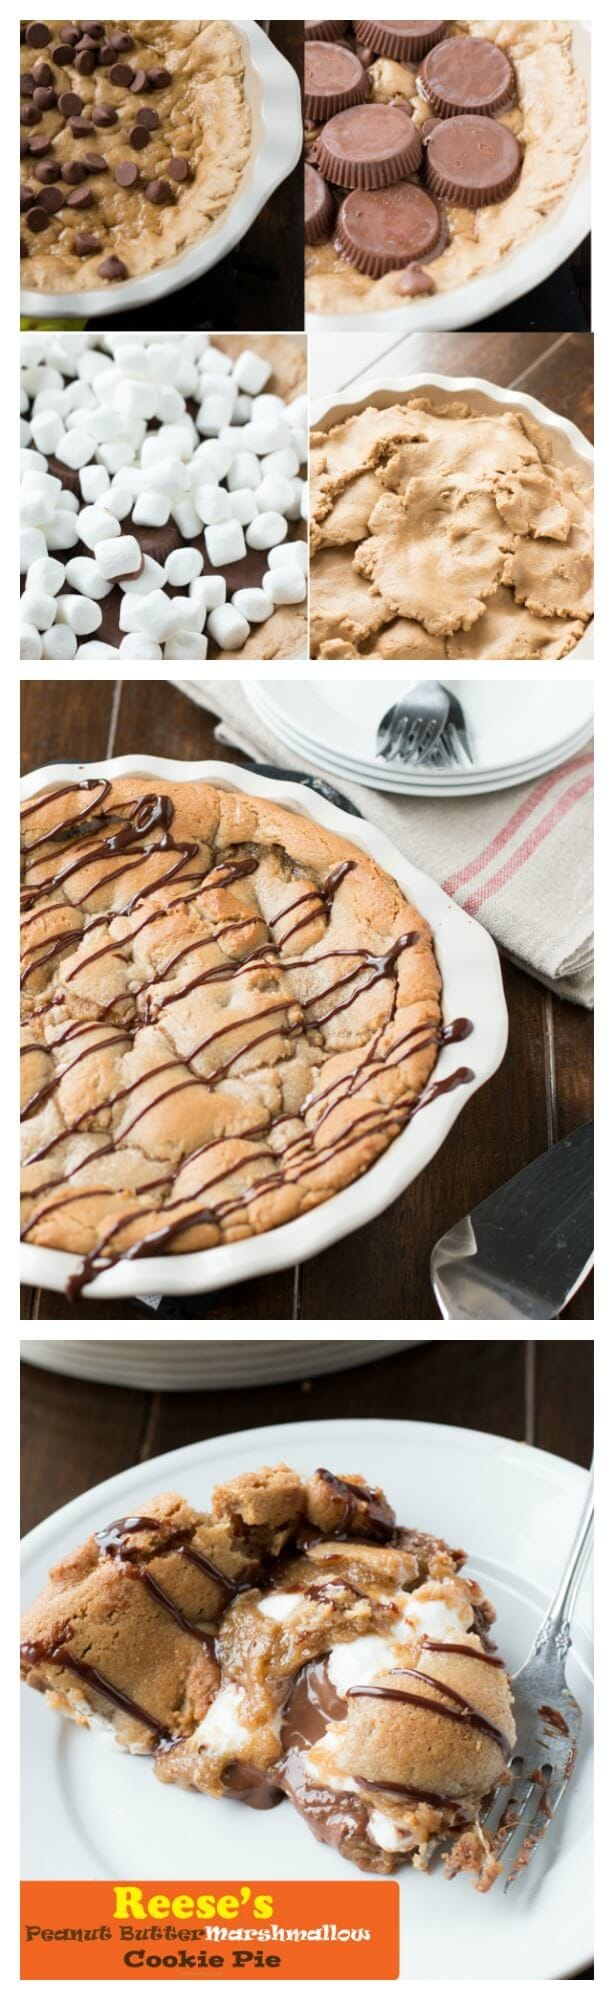 this turned out awesome!! Reese's peanut butter marshmallow cookie pie! #recipe #cookiepie ohsweetbasil.com